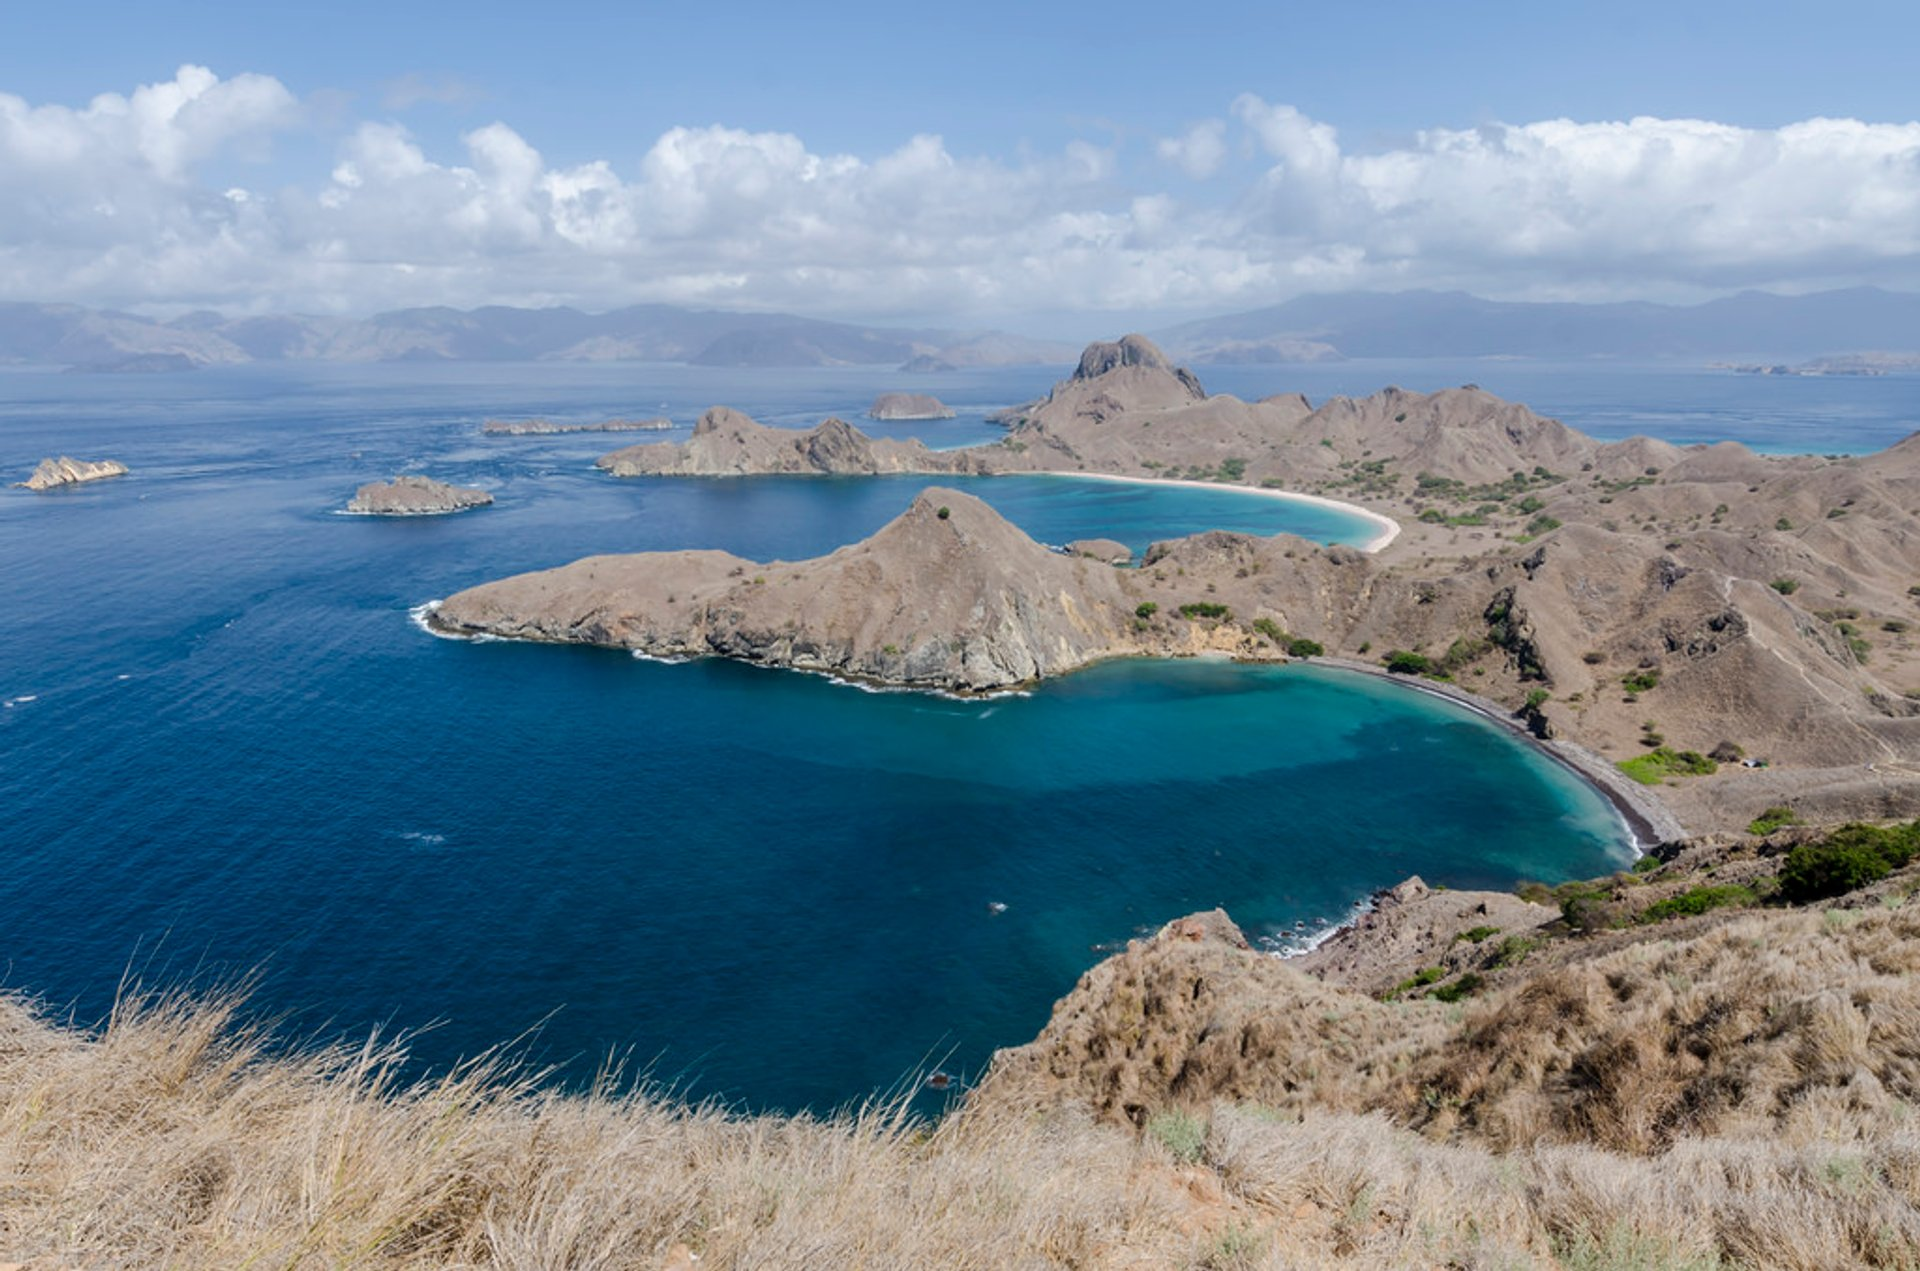 Padar Island in Indonesia 2020 - Best Time